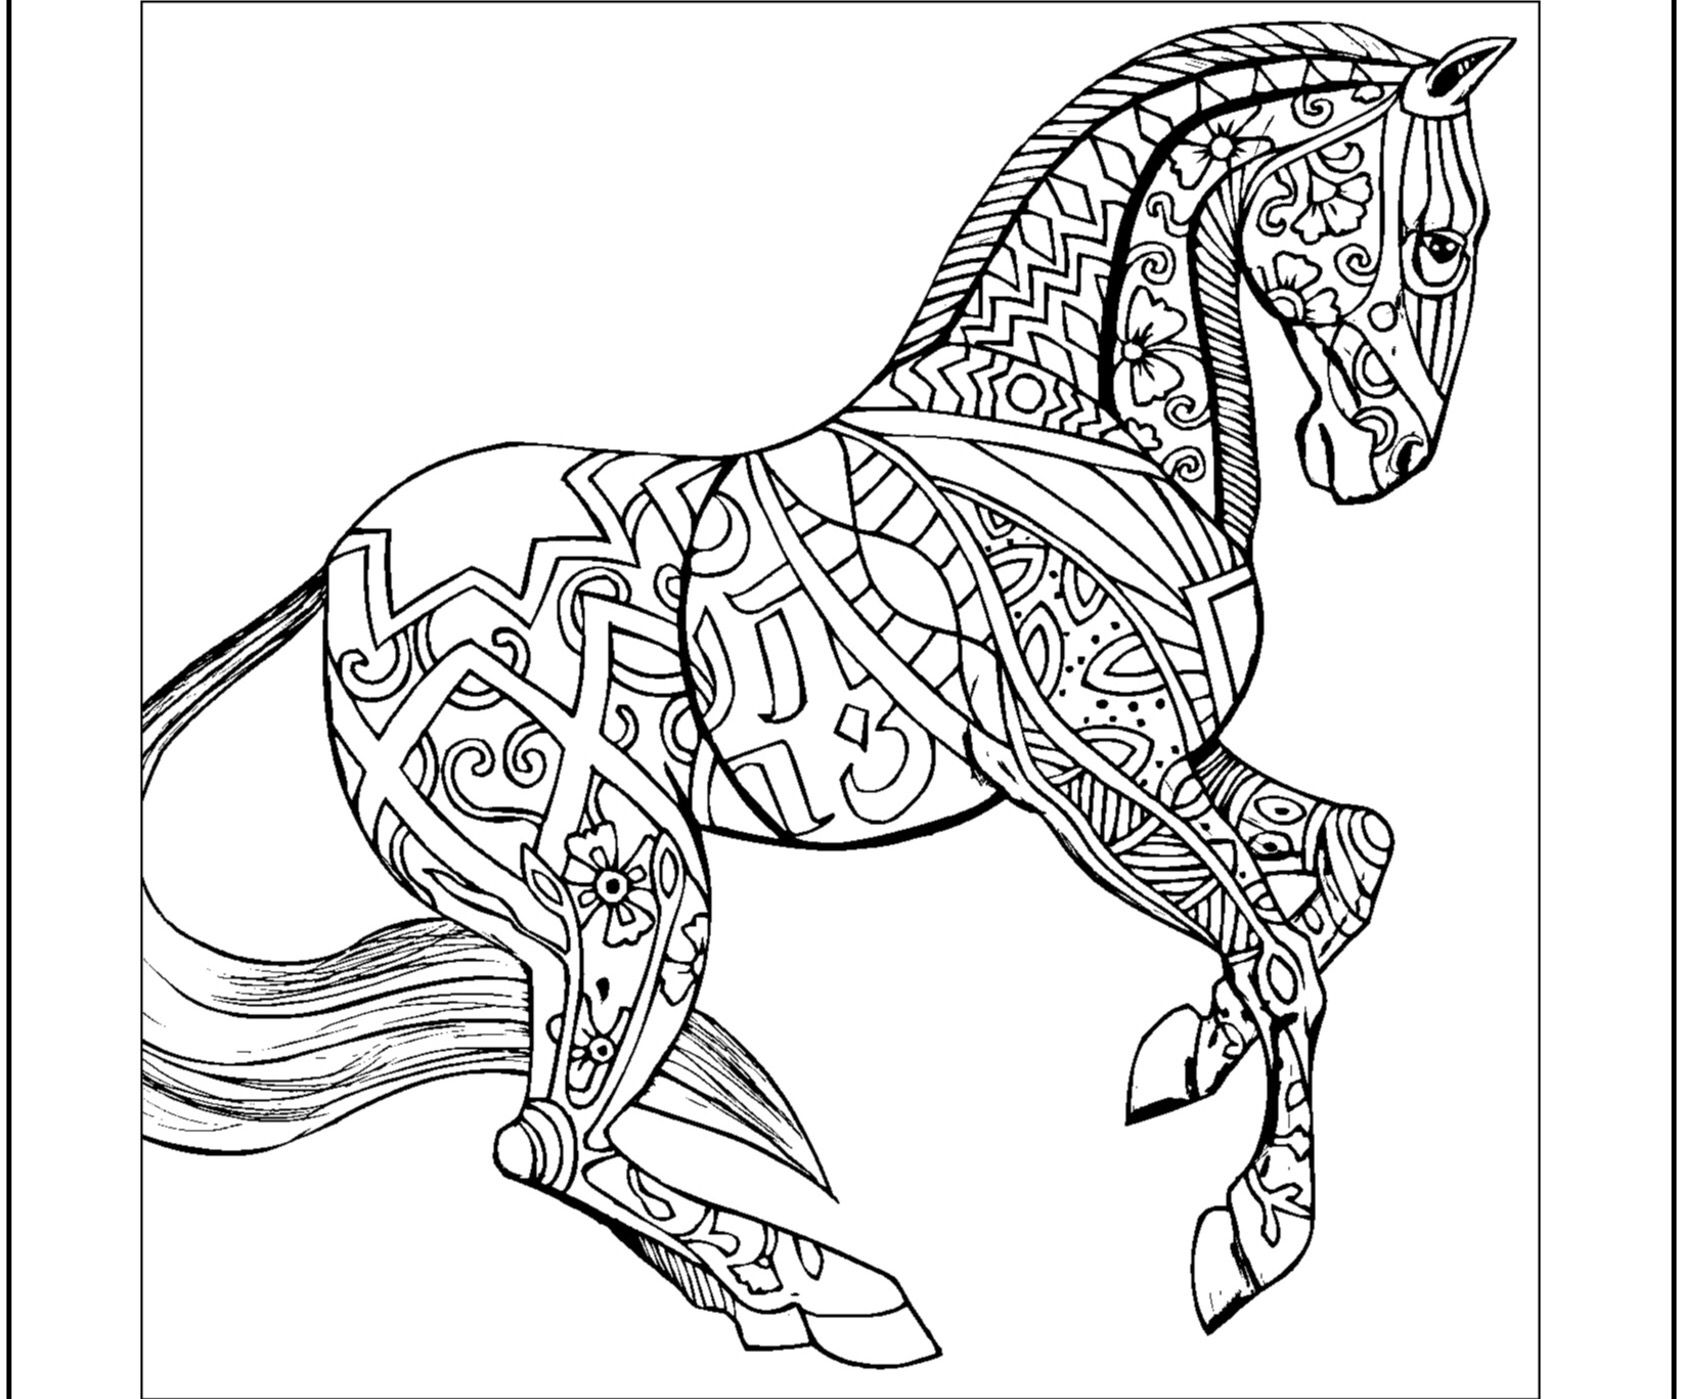 Zentangle Horse Coloring Pages At Getcolorings